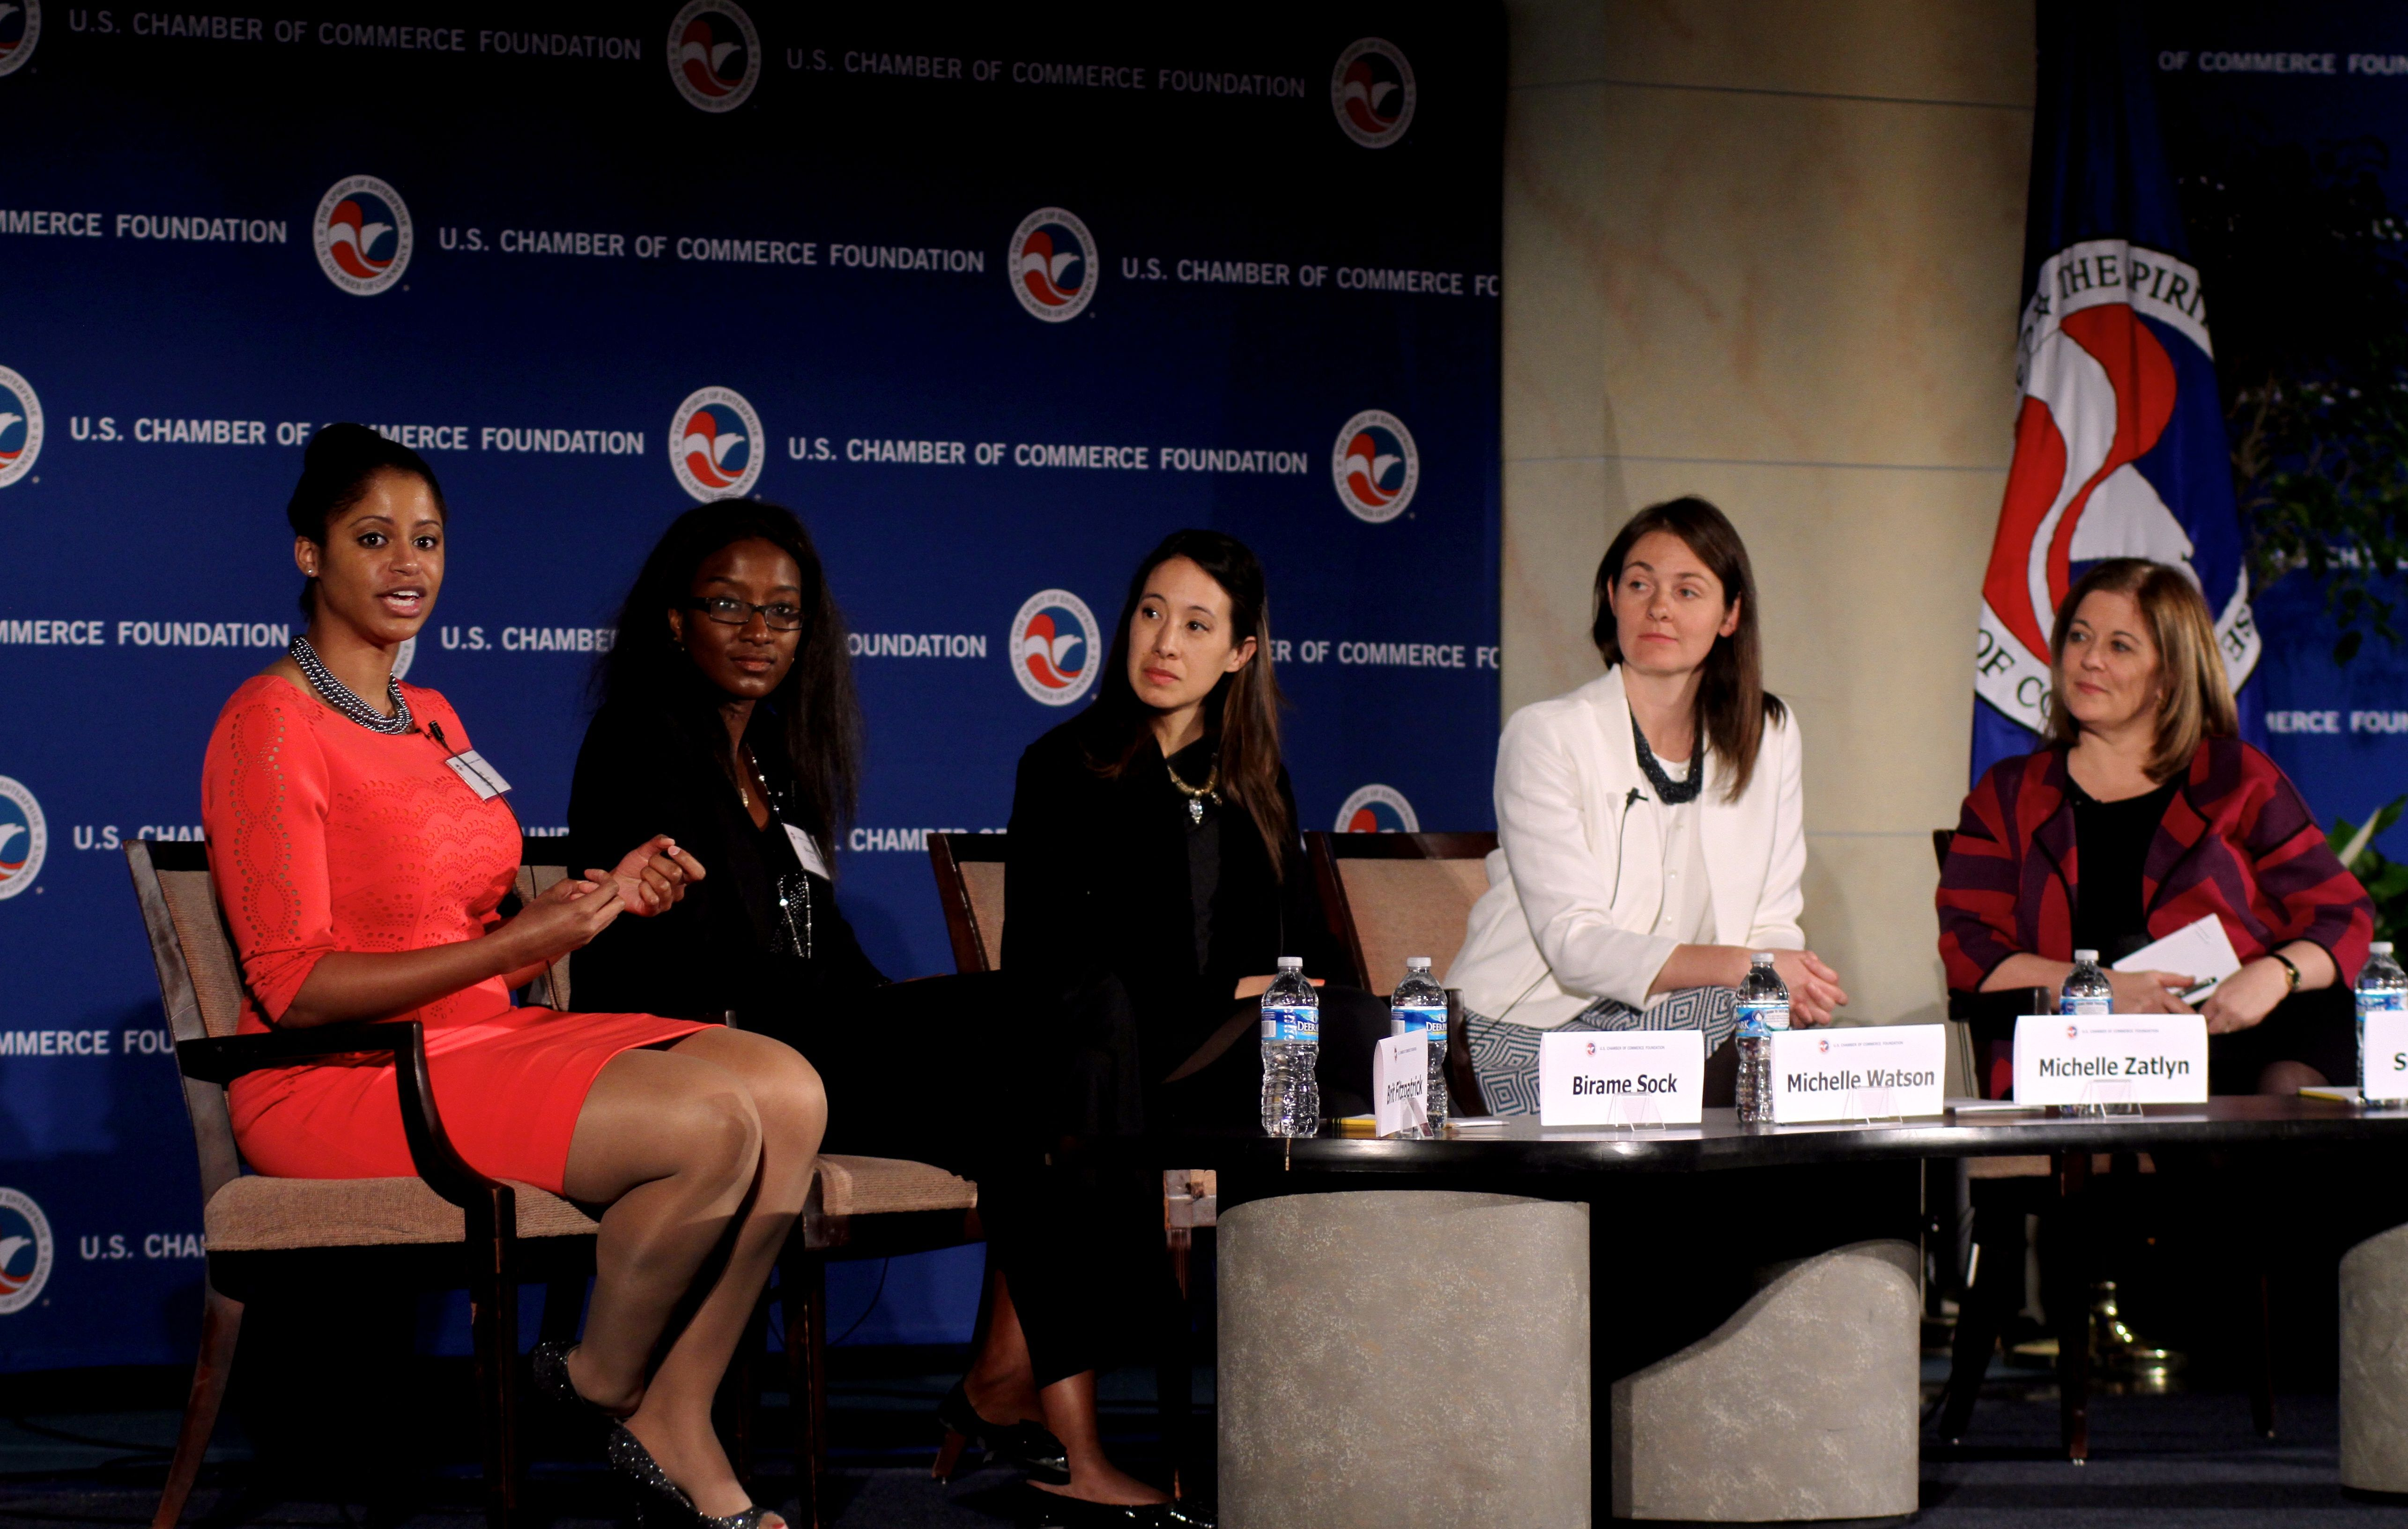 Discussing women in business at the us chamber cwb summit